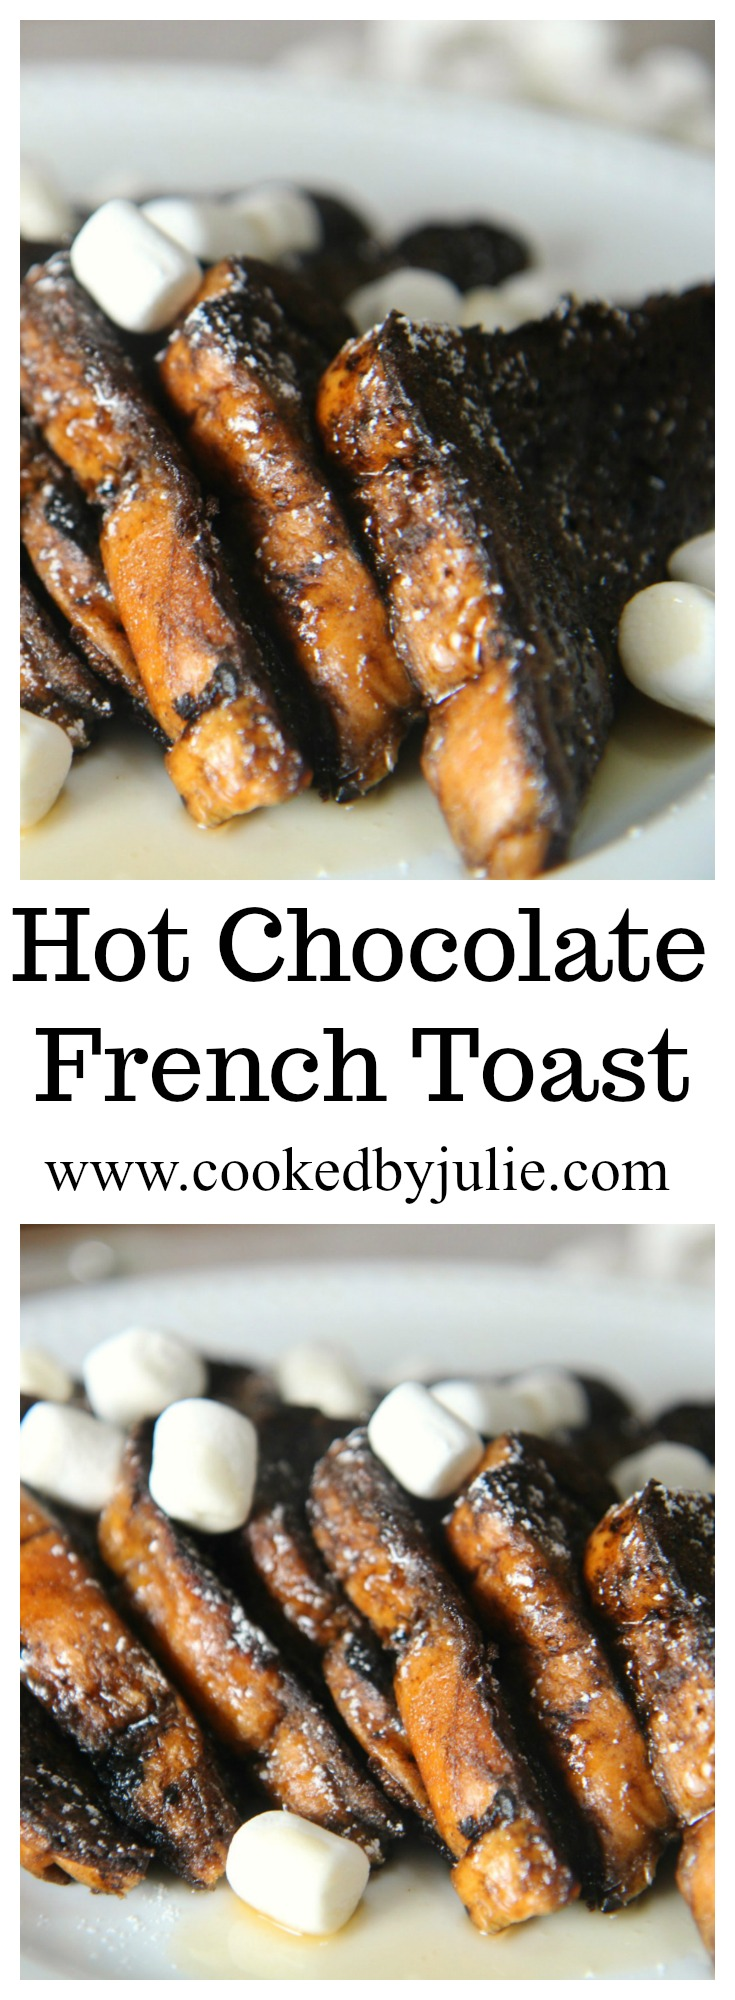 Learn how to make Hot Chocolate French Toast at cookedbyjulie.com